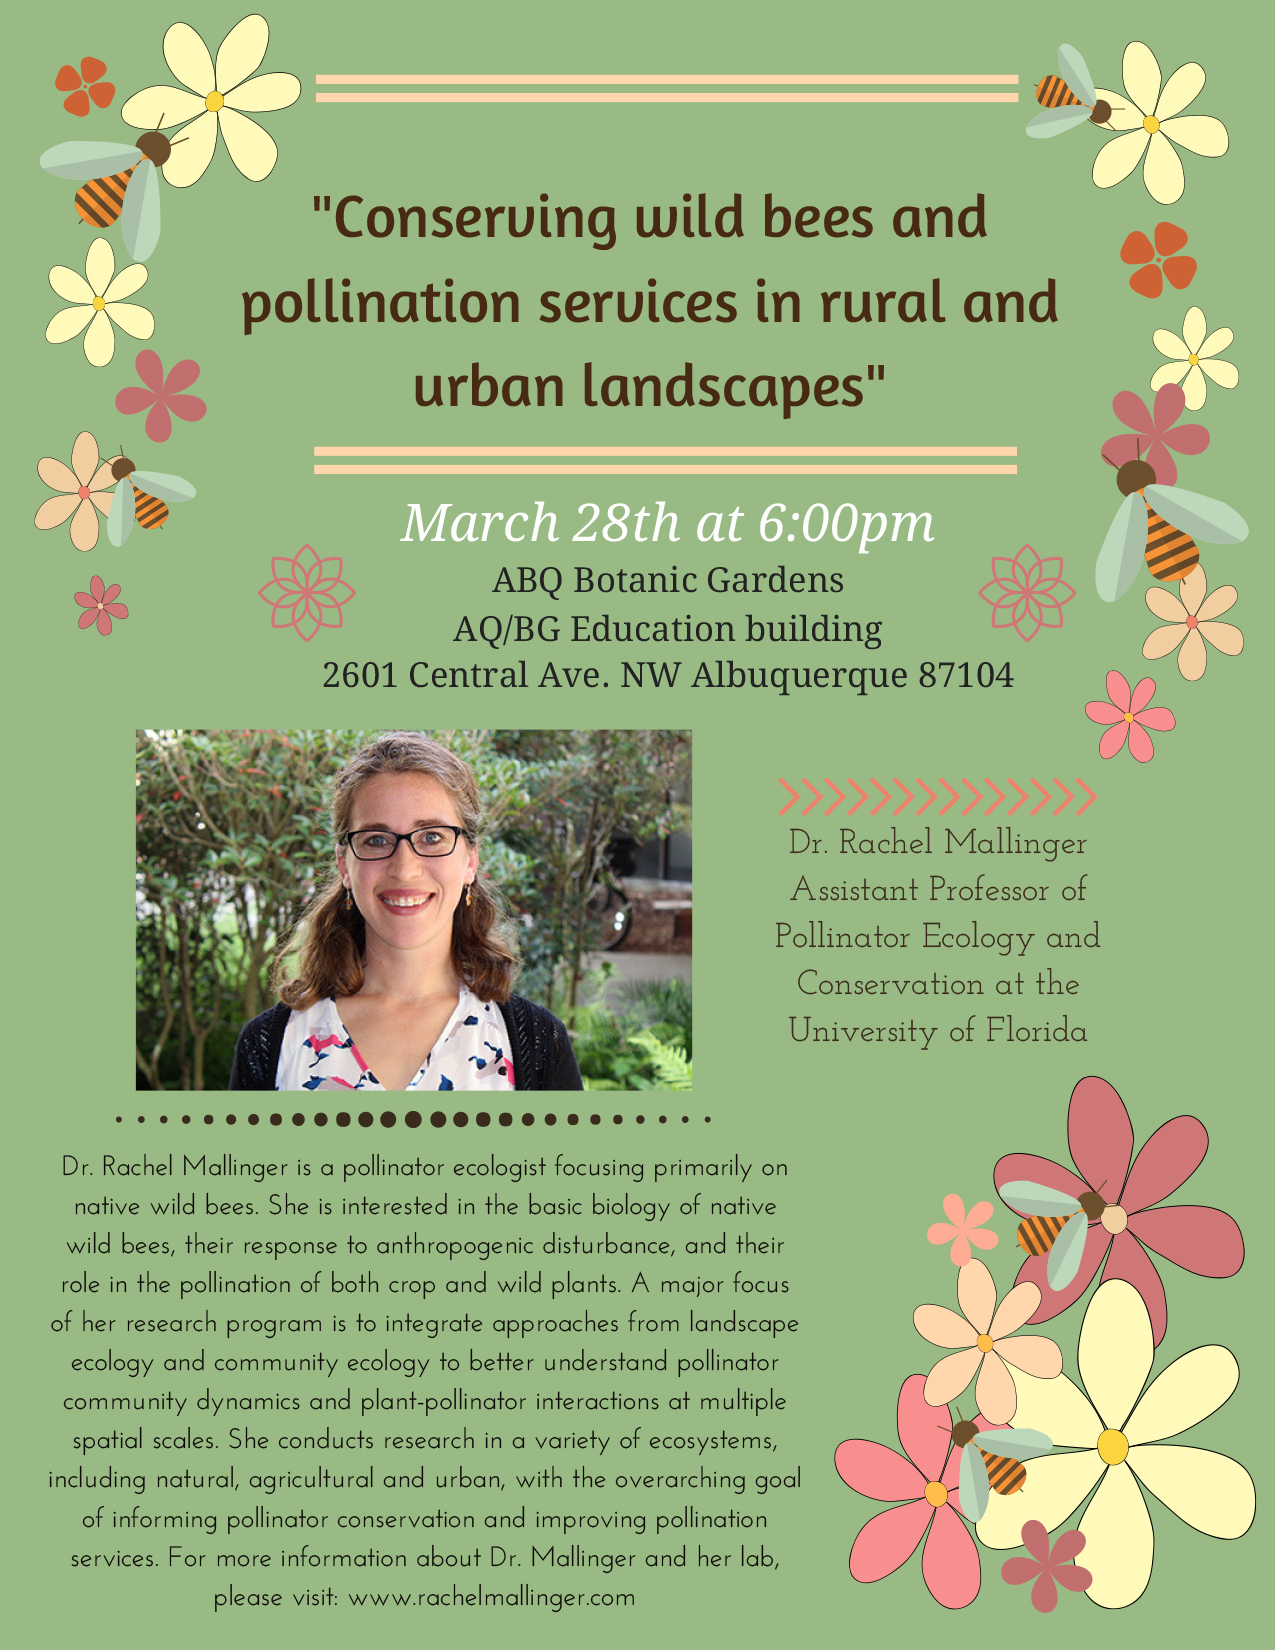 Conserving wild bees and pollination services in rural and urban landscapes @ ABQ Botanic Gardens - AQ/BG Education building | Albuquerque | New Mexico | United States